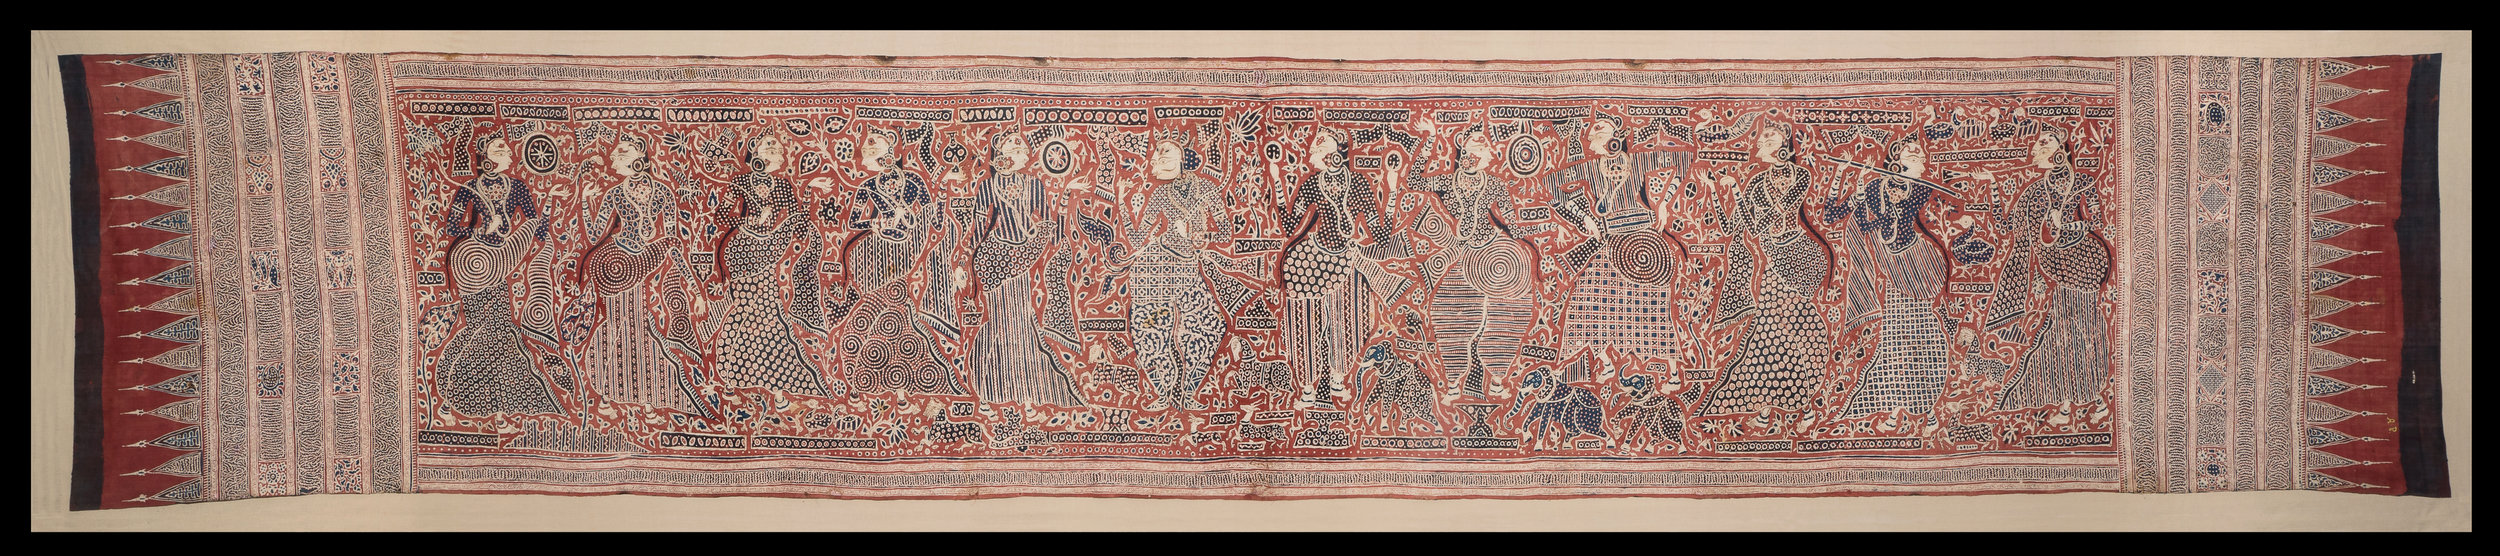 Heirloom textile - Cotton, mordant and resist-dyedAbout AD 1500Made in Gujarat, India; found in Sulawesi, IndonesiaTAPI Collection of Praful and Shilpa Shah, SuratMost Gujarati textiles for the Indonesian market were block-printed, however, some were highly valued heirlooms. This hand-painted textile shows a shahi king with five nayikas or surasundaris (celestial beauties). Behind him are six female musicians and dancers. The costumes are also varied – the ladies wear a ghagra skirt and dhoti, while the king is in tailored salwar-style trousers. Interestingly, he is wearing boots that are Central Asian in origin.